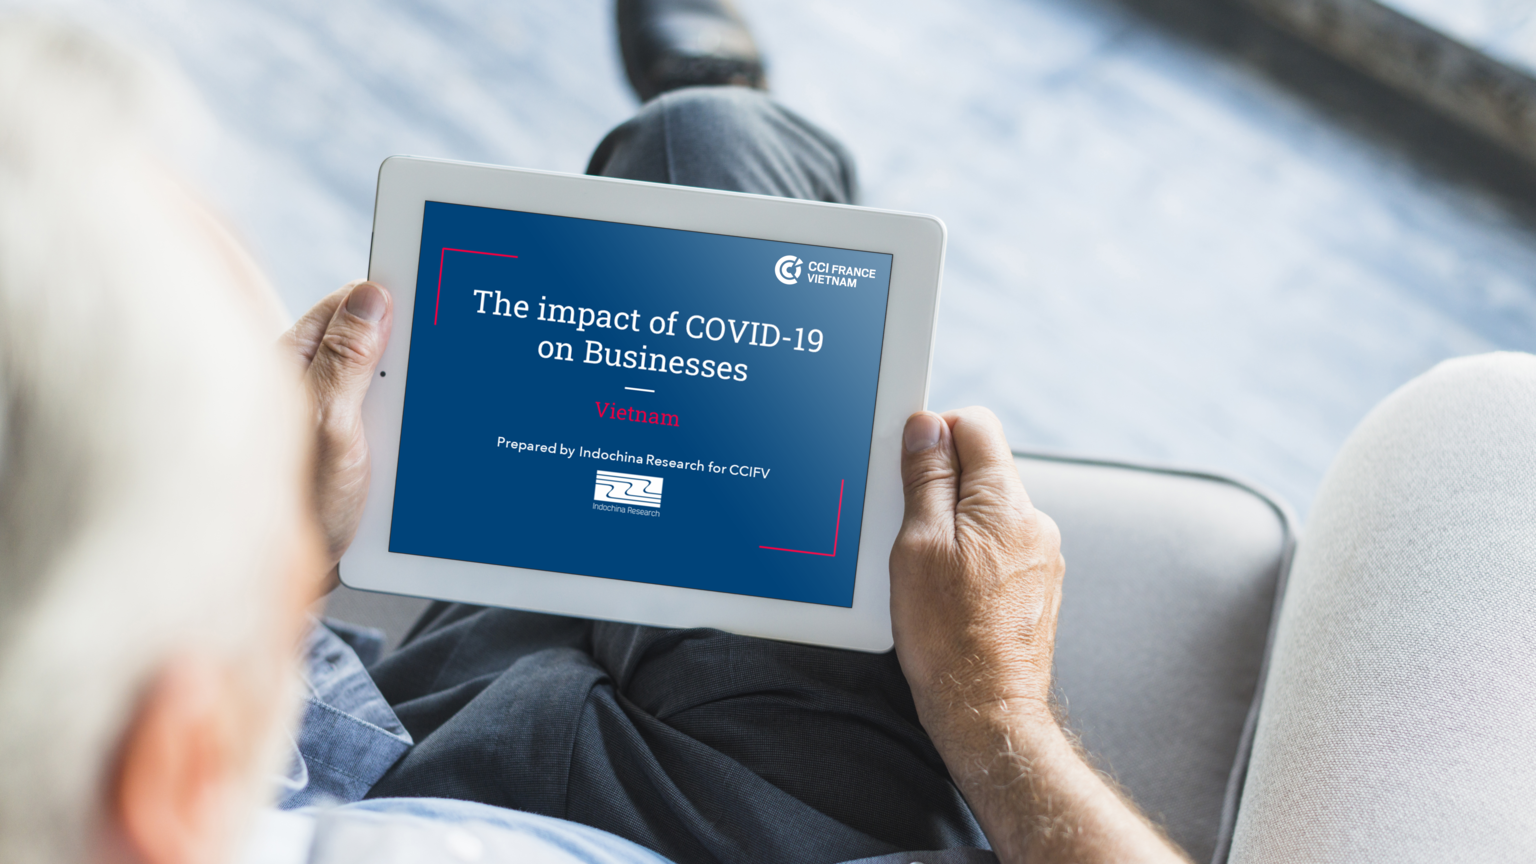 The Impact of COVID-19 on companies